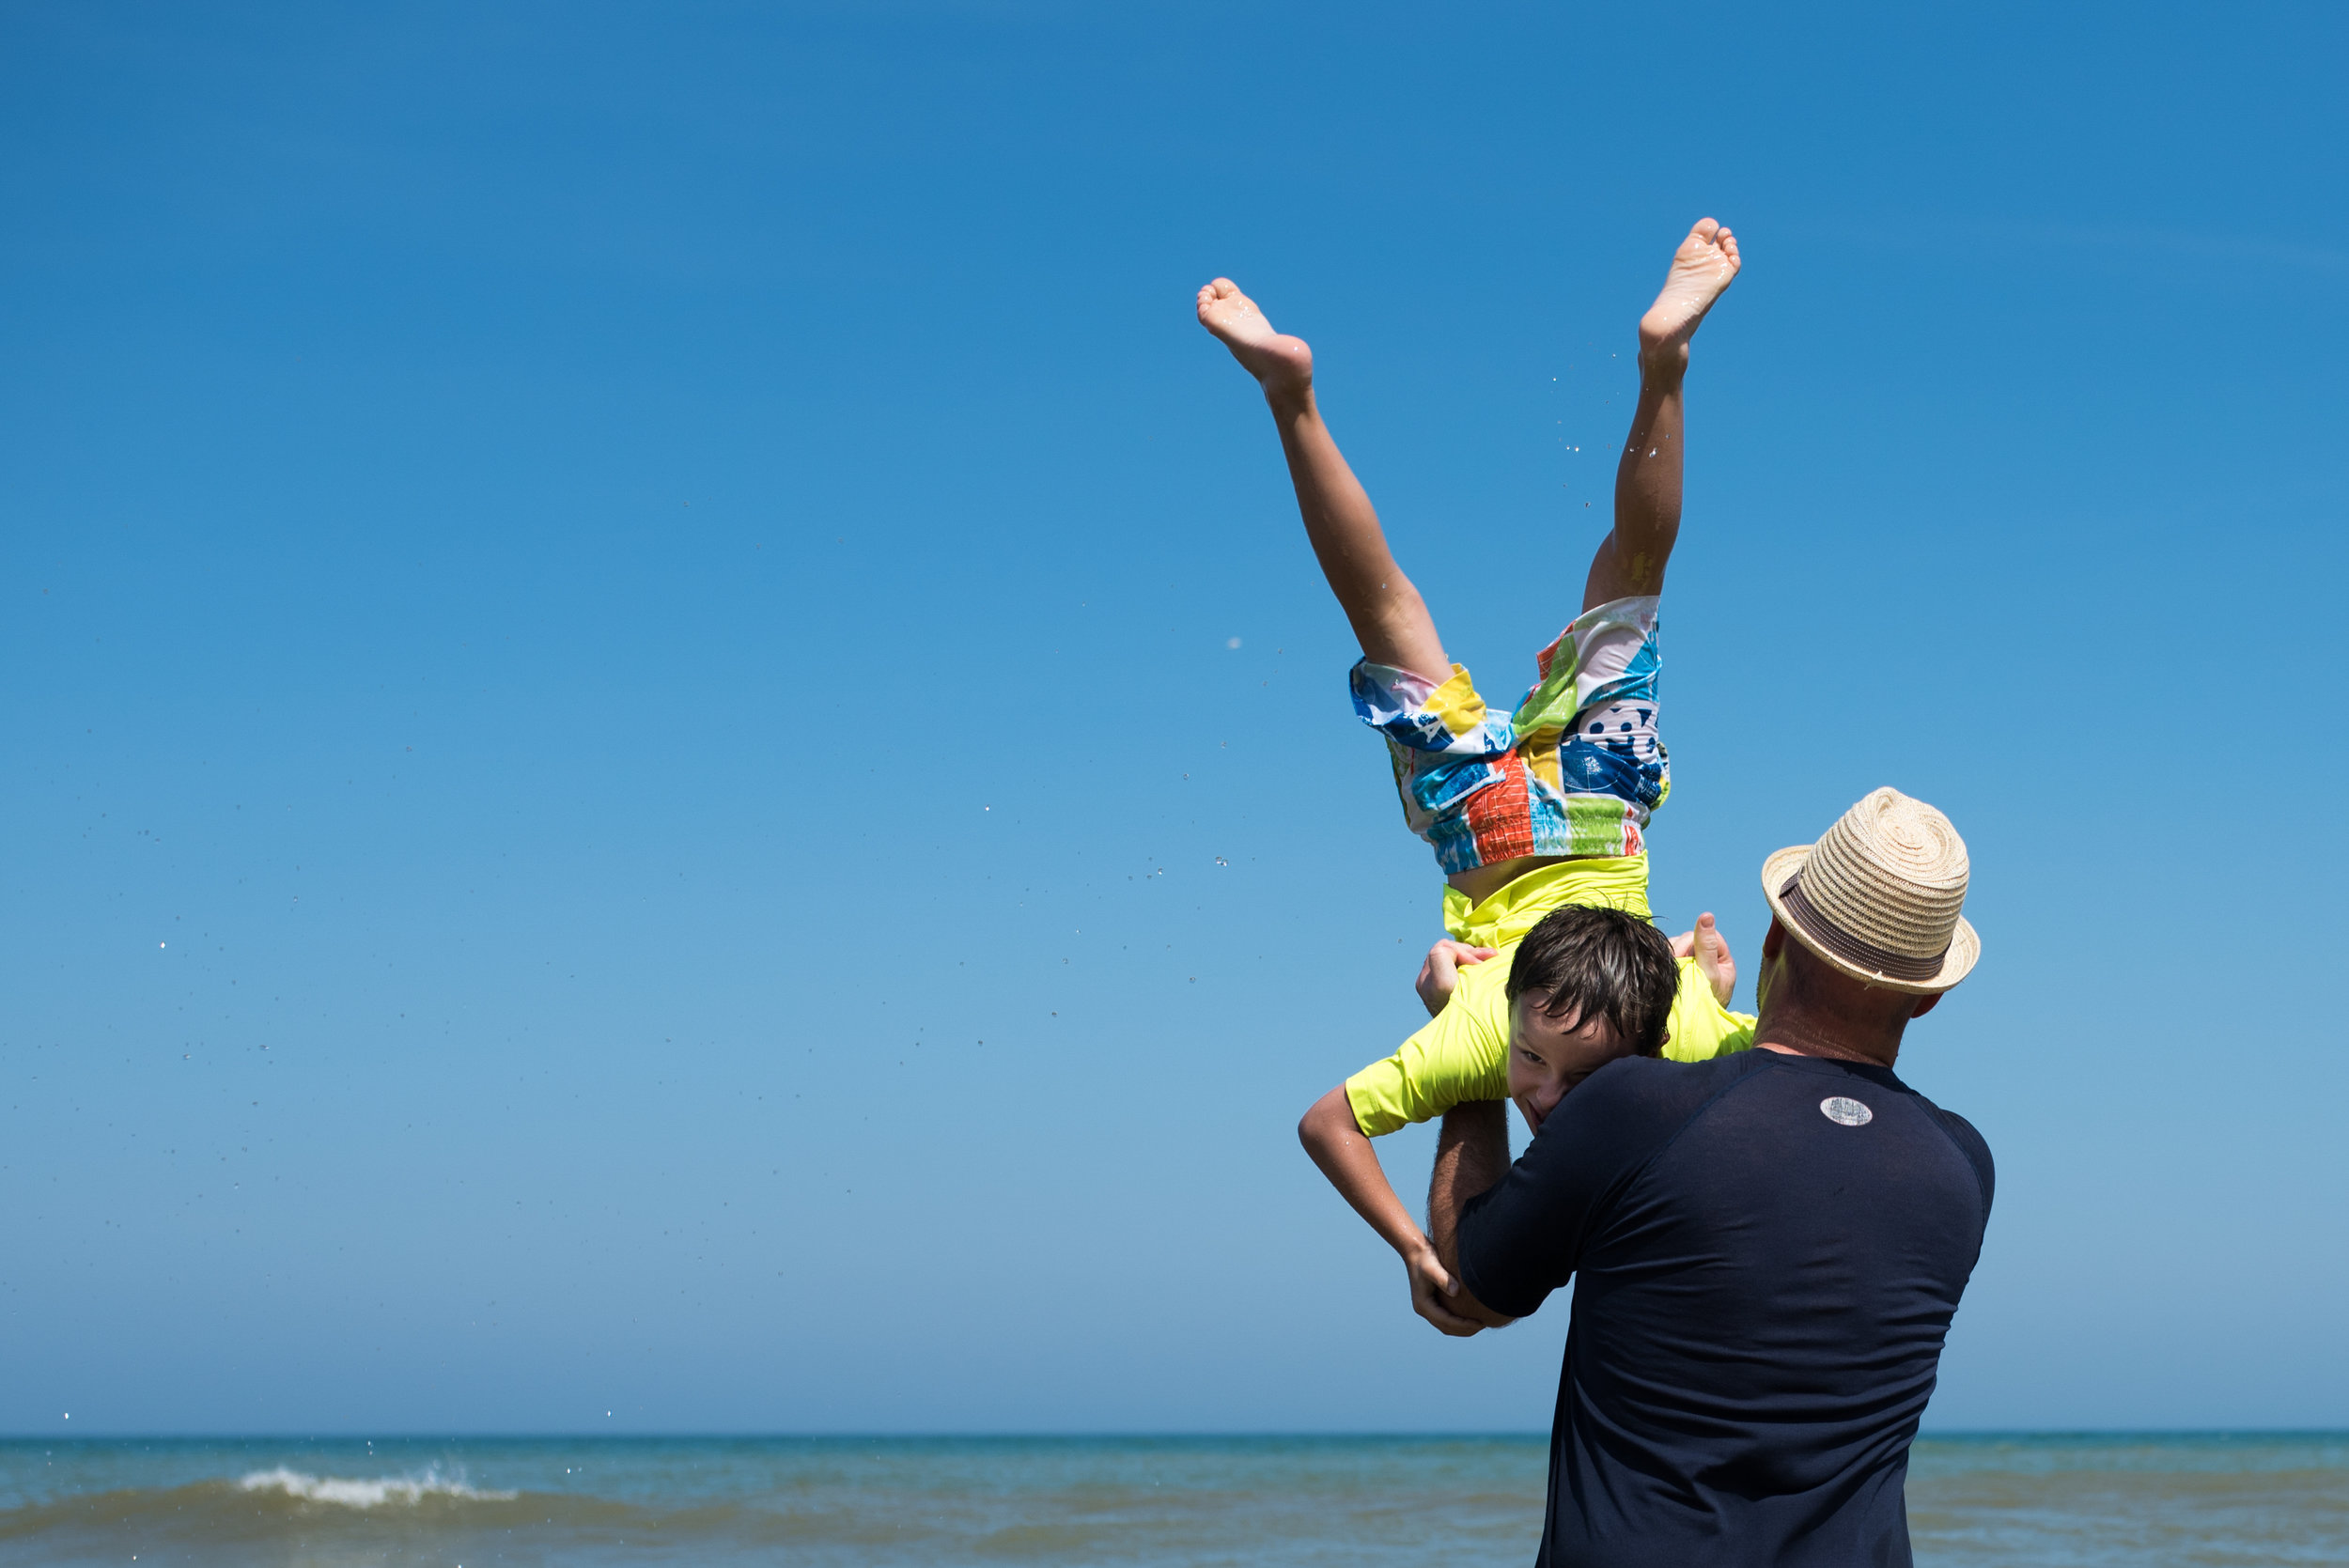 Dad swinging son straight in the air in the water, son laughing